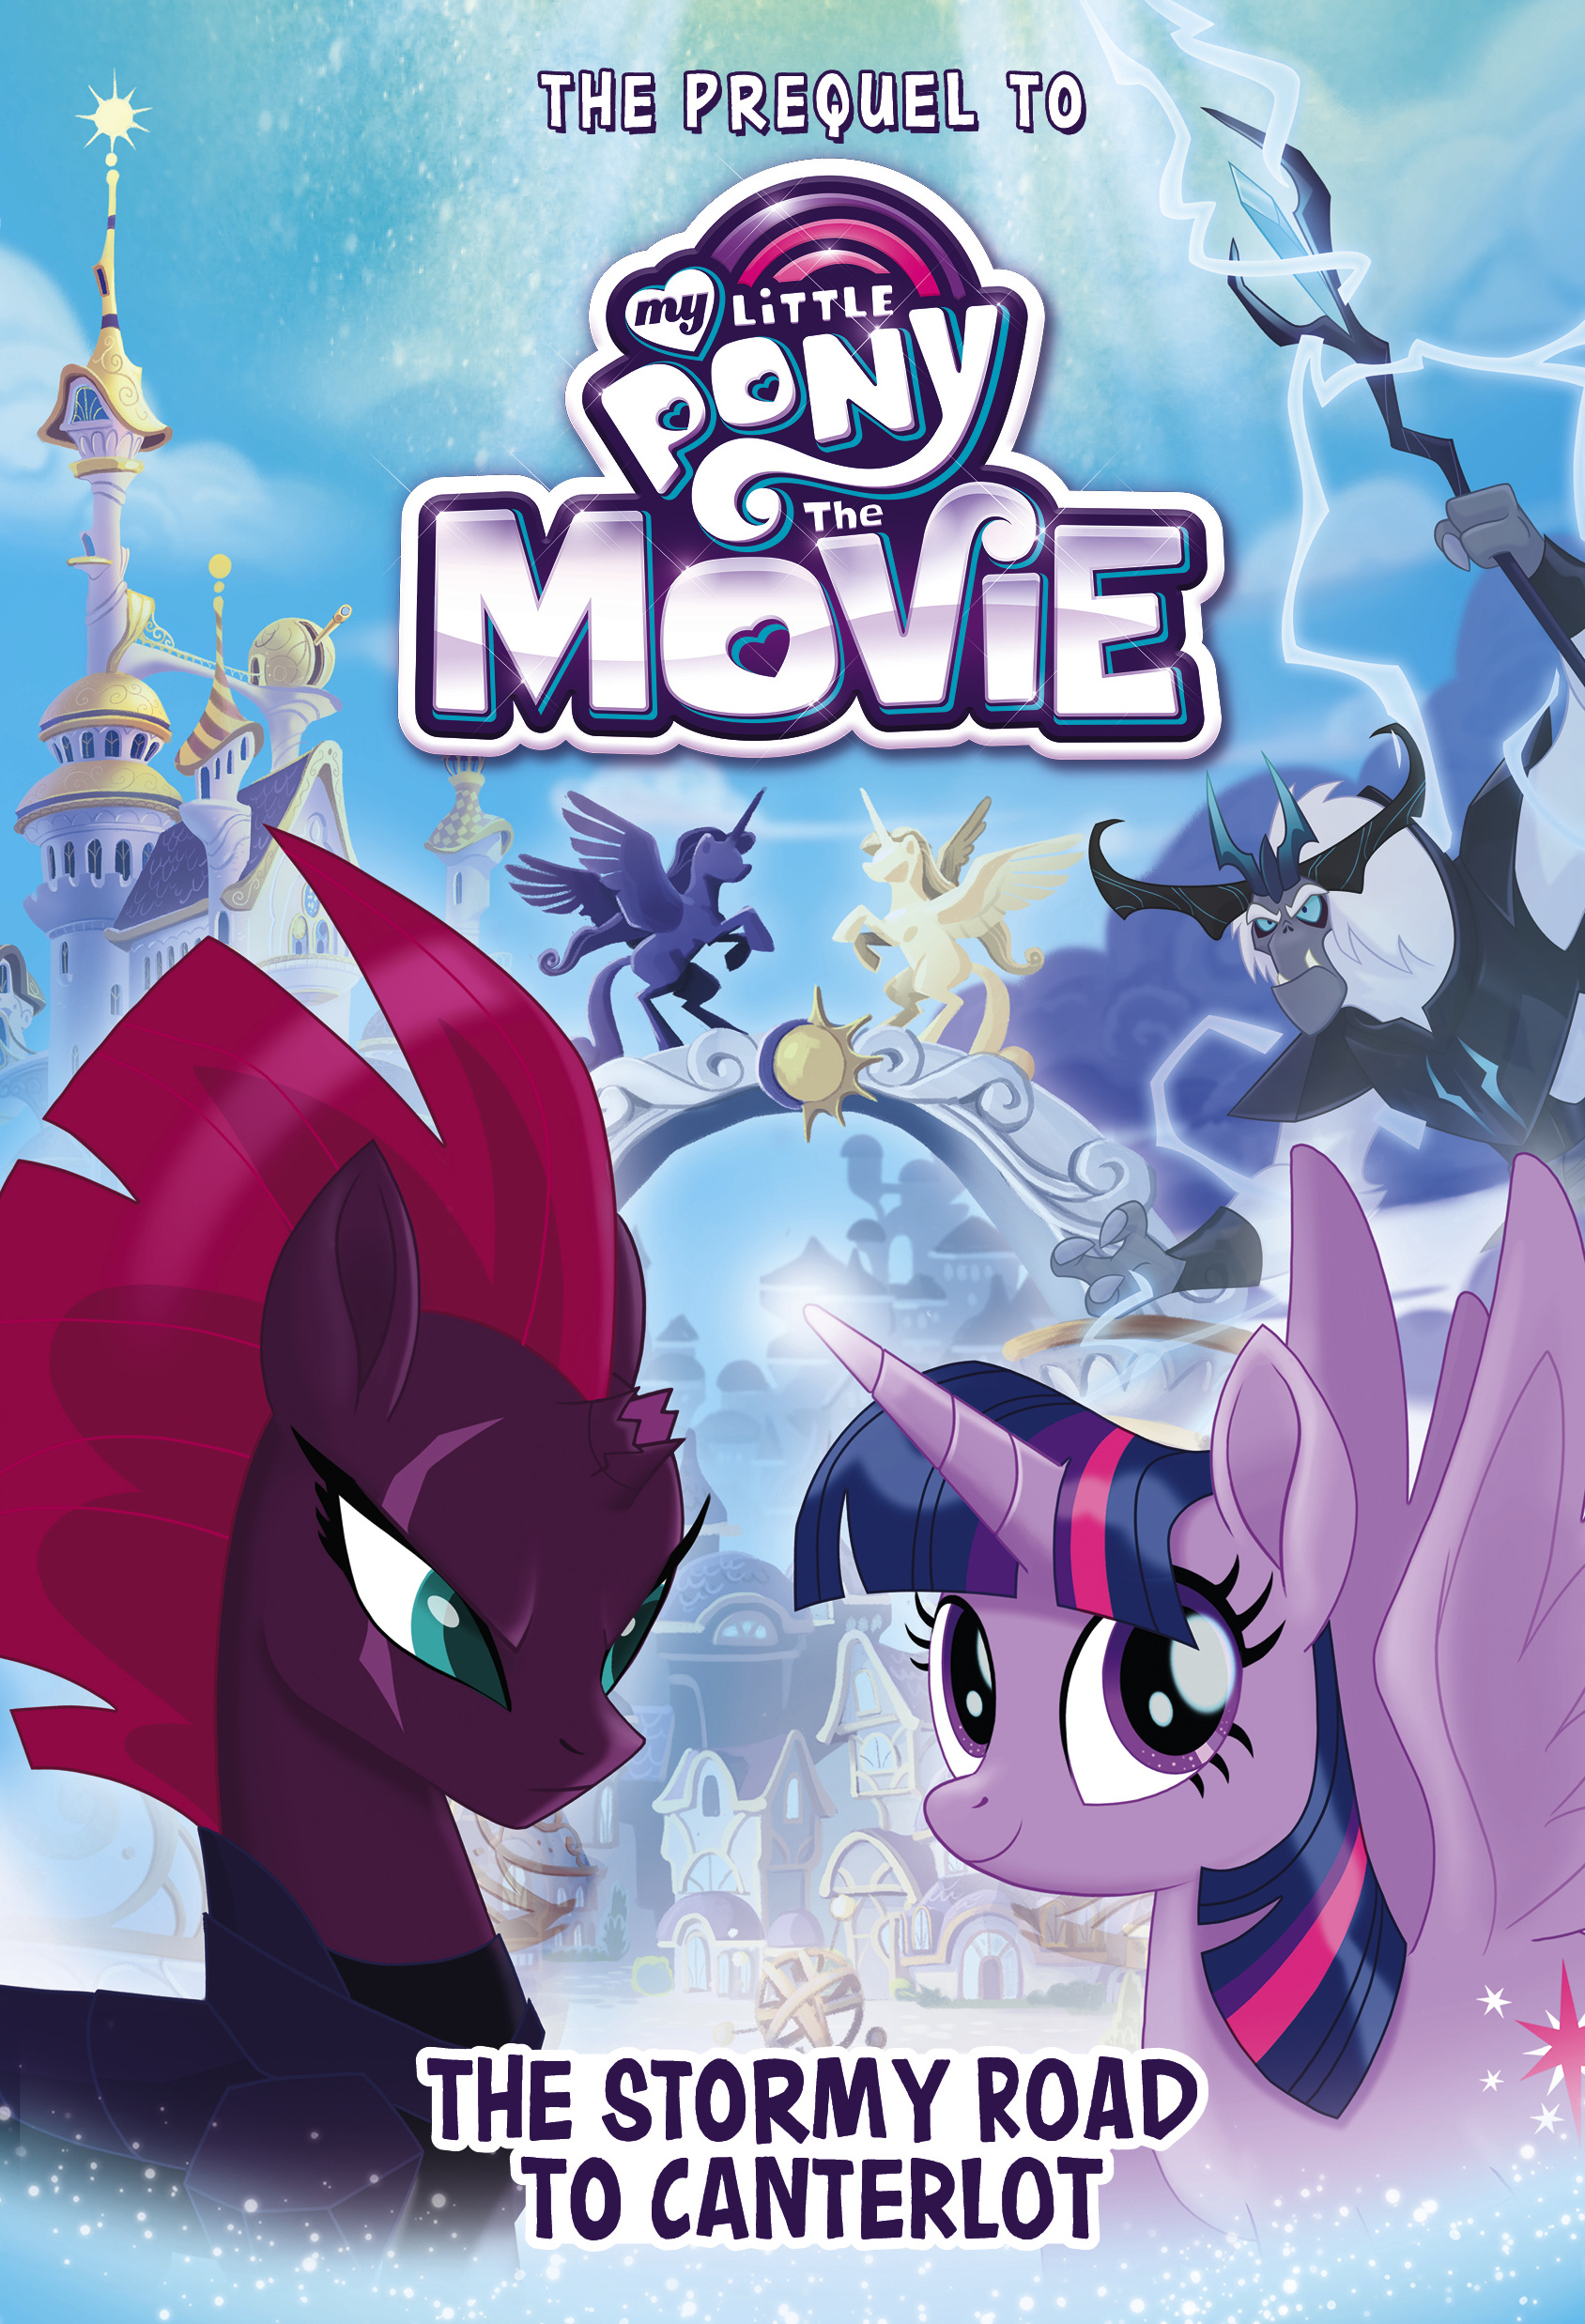 My Little Pony The Movie: The Stormy Road to Canterlot